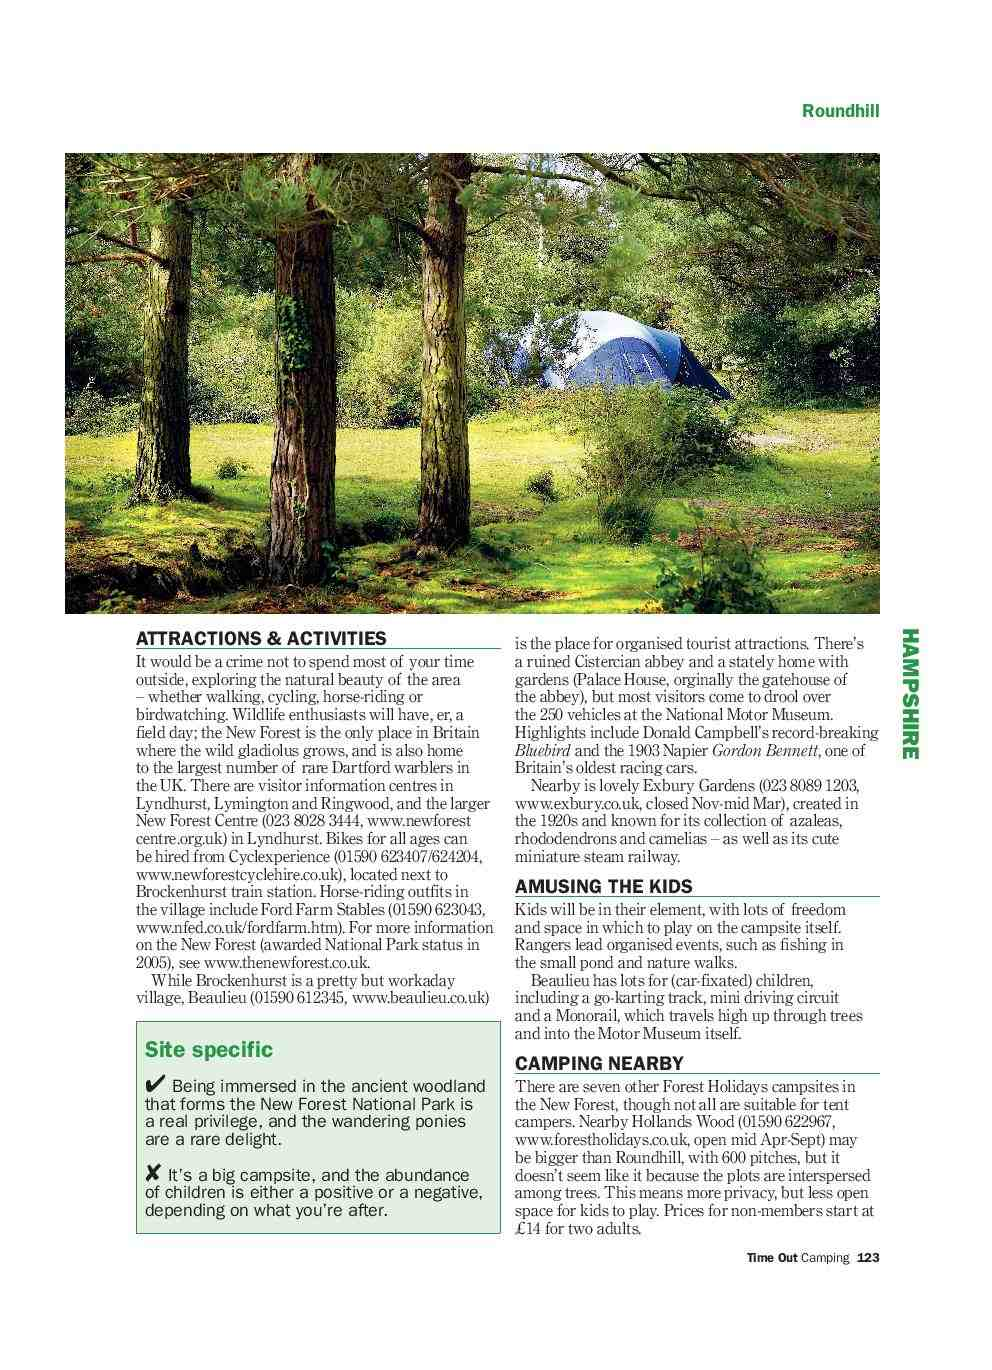 Camping_2_123-page-001